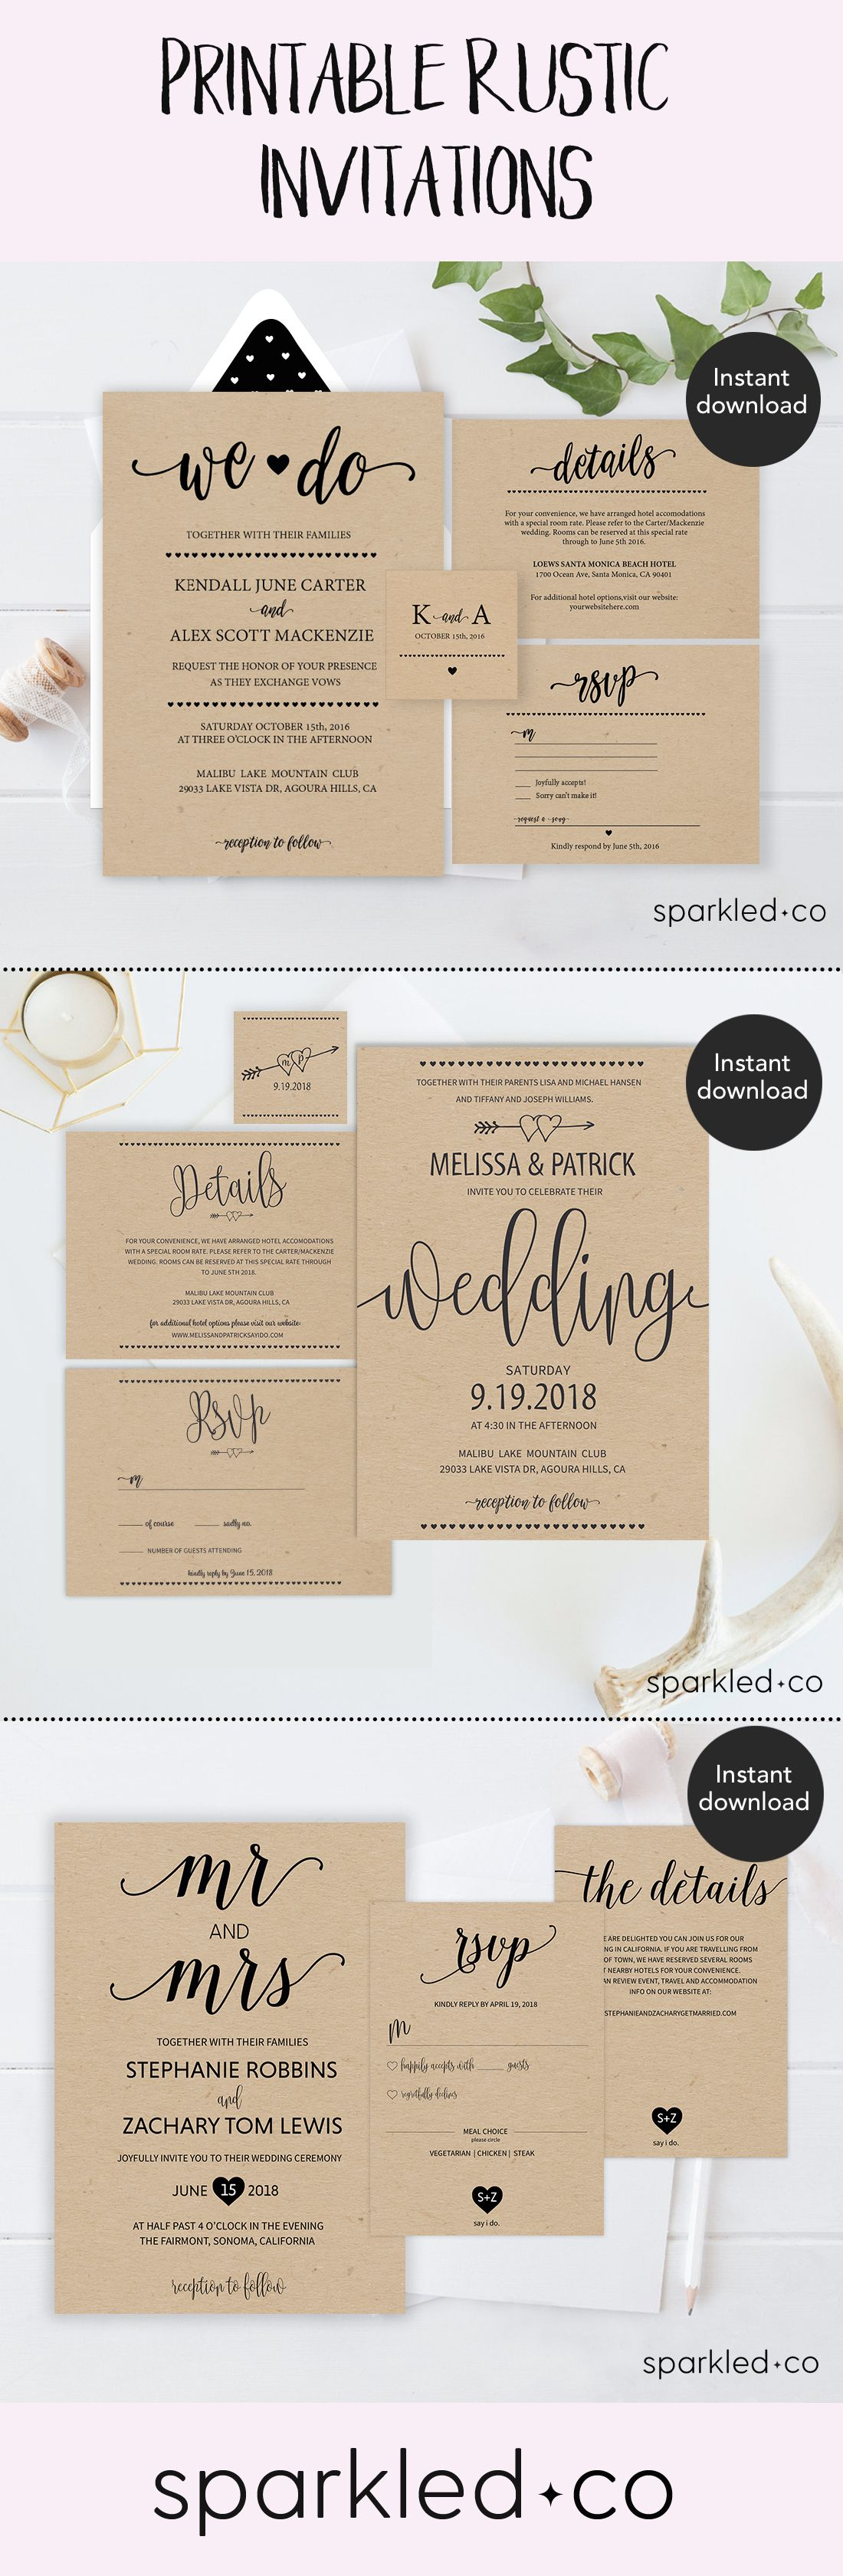 Affordable diy rustic wedding invitations febii pinterest affordable diy rustic wedding invitations solutioingenieria